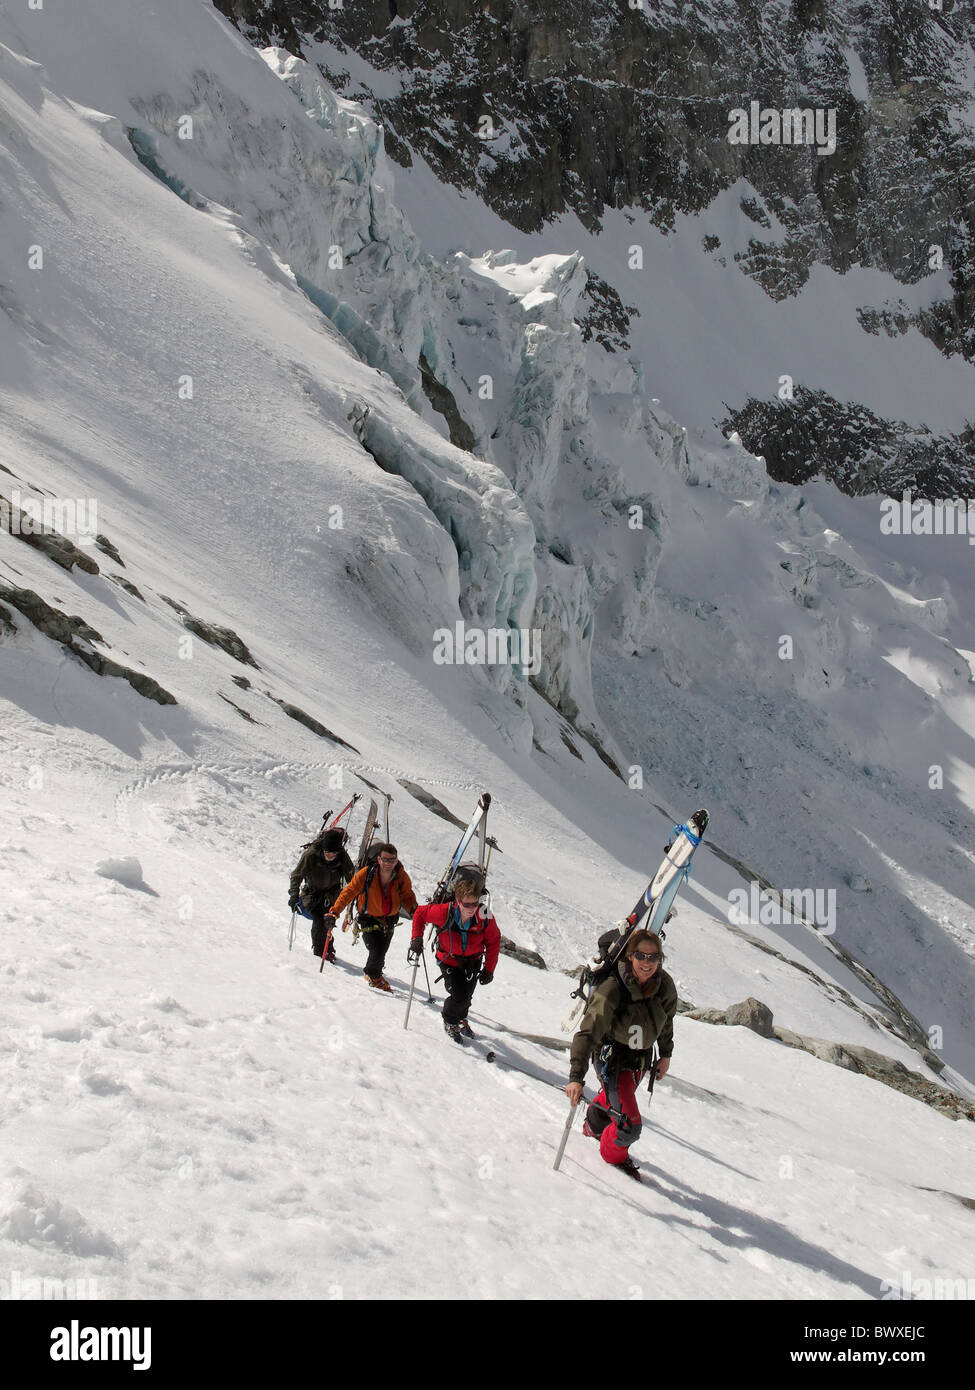 A group of ski tourers, walking up the steeper section at the side of the Brenay icefall, on the Brenay Glacier, - Stock Image